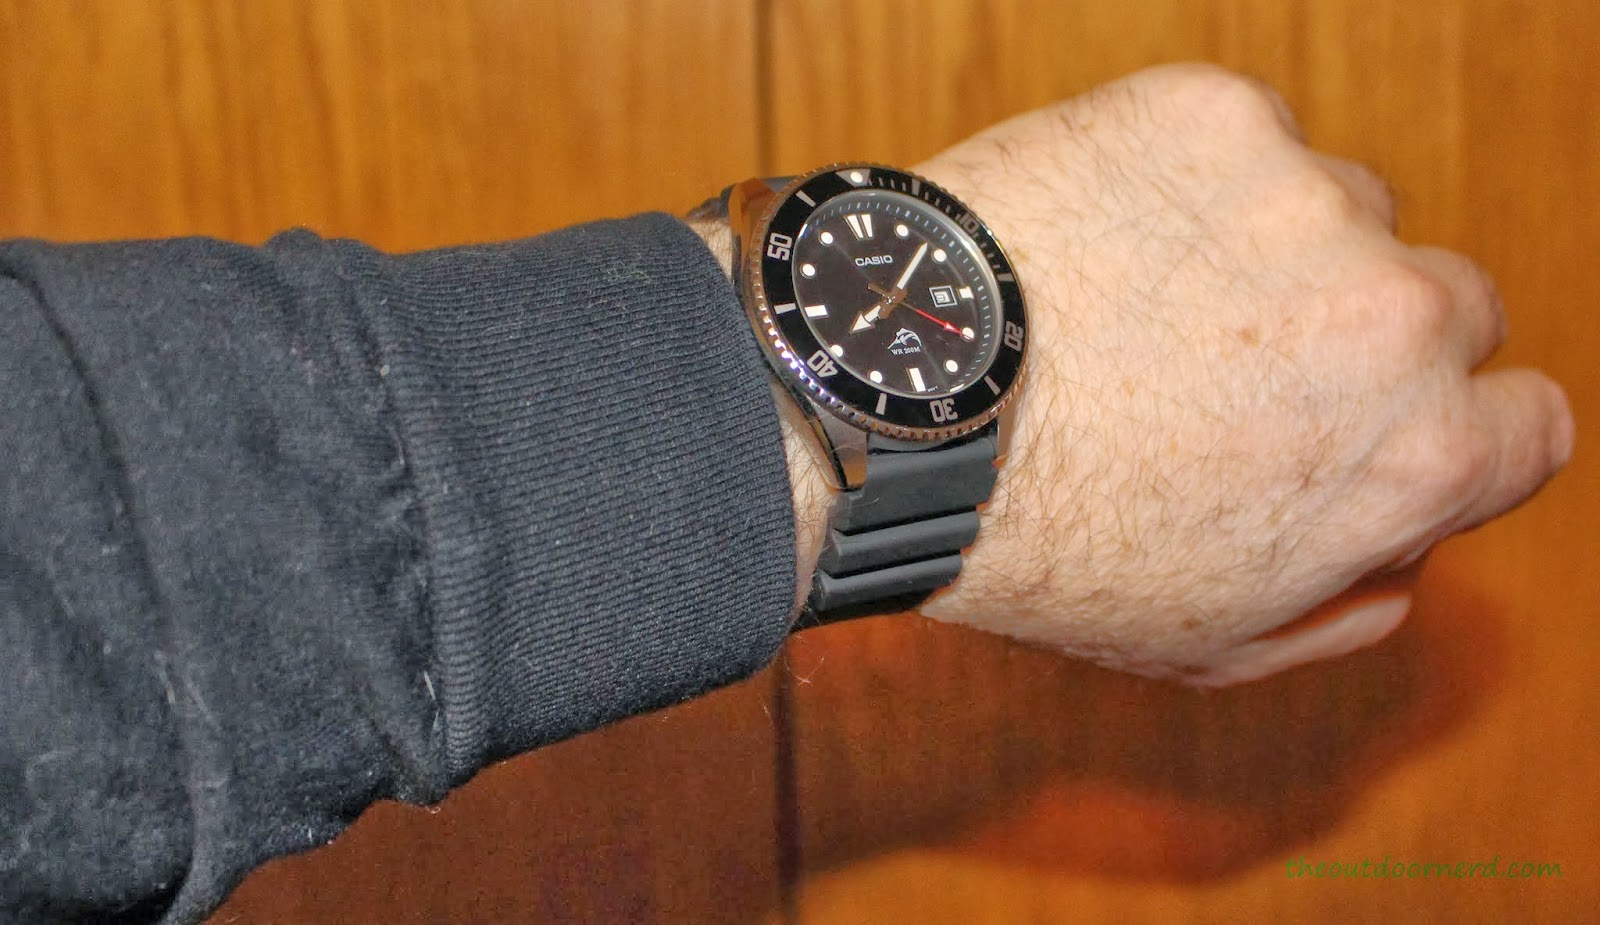 Casio MDV106-1A Diver's Watch: On Wrist